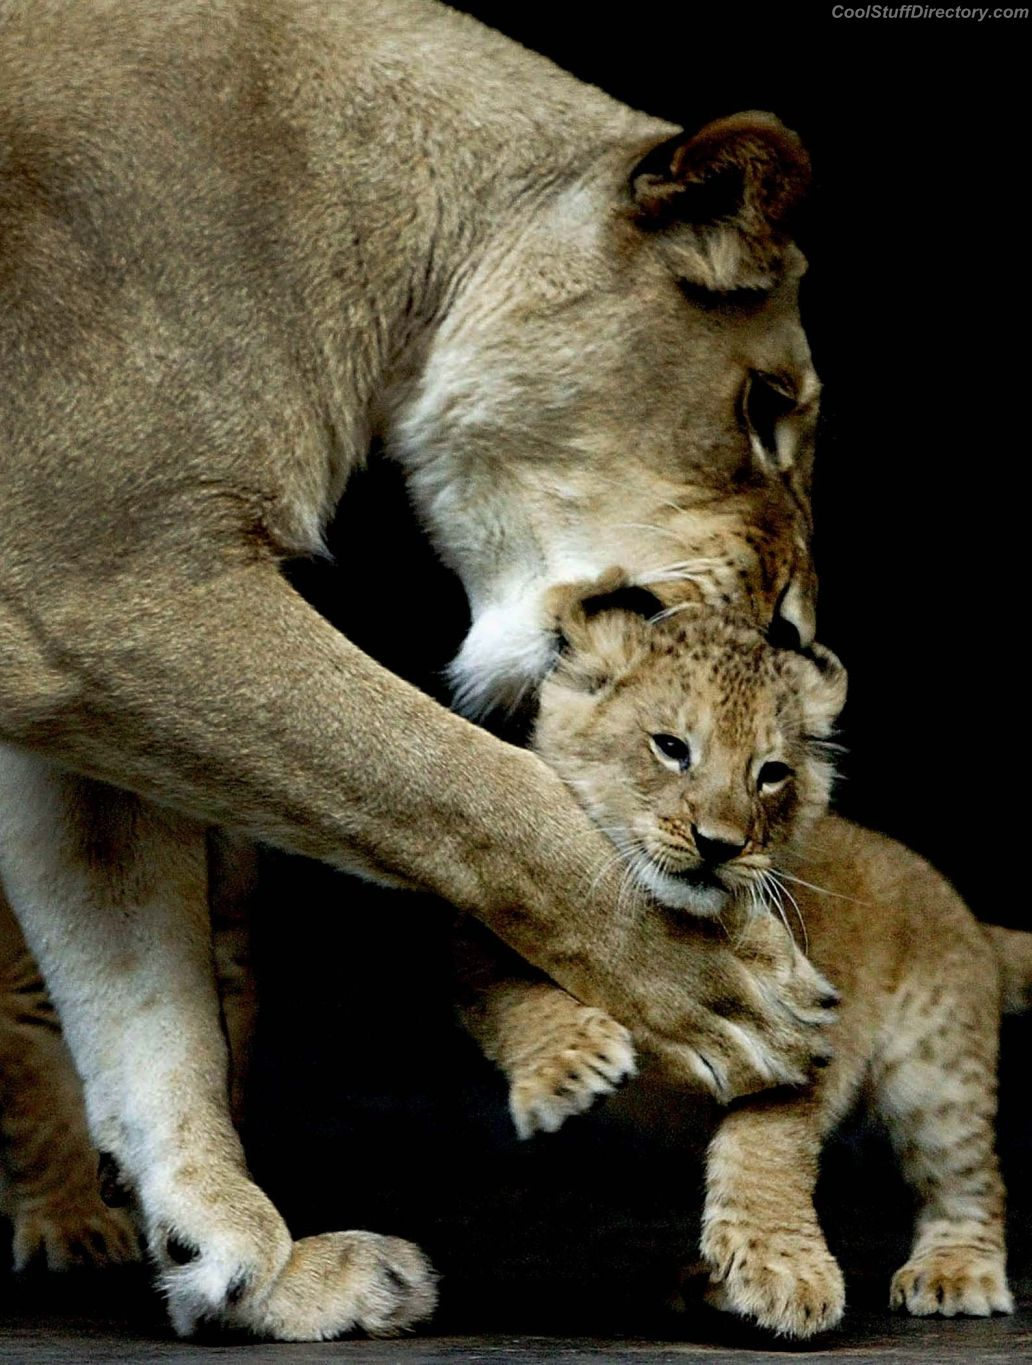 African lioness plays with her baby at Taronga Zoo, Sydney, Australia.